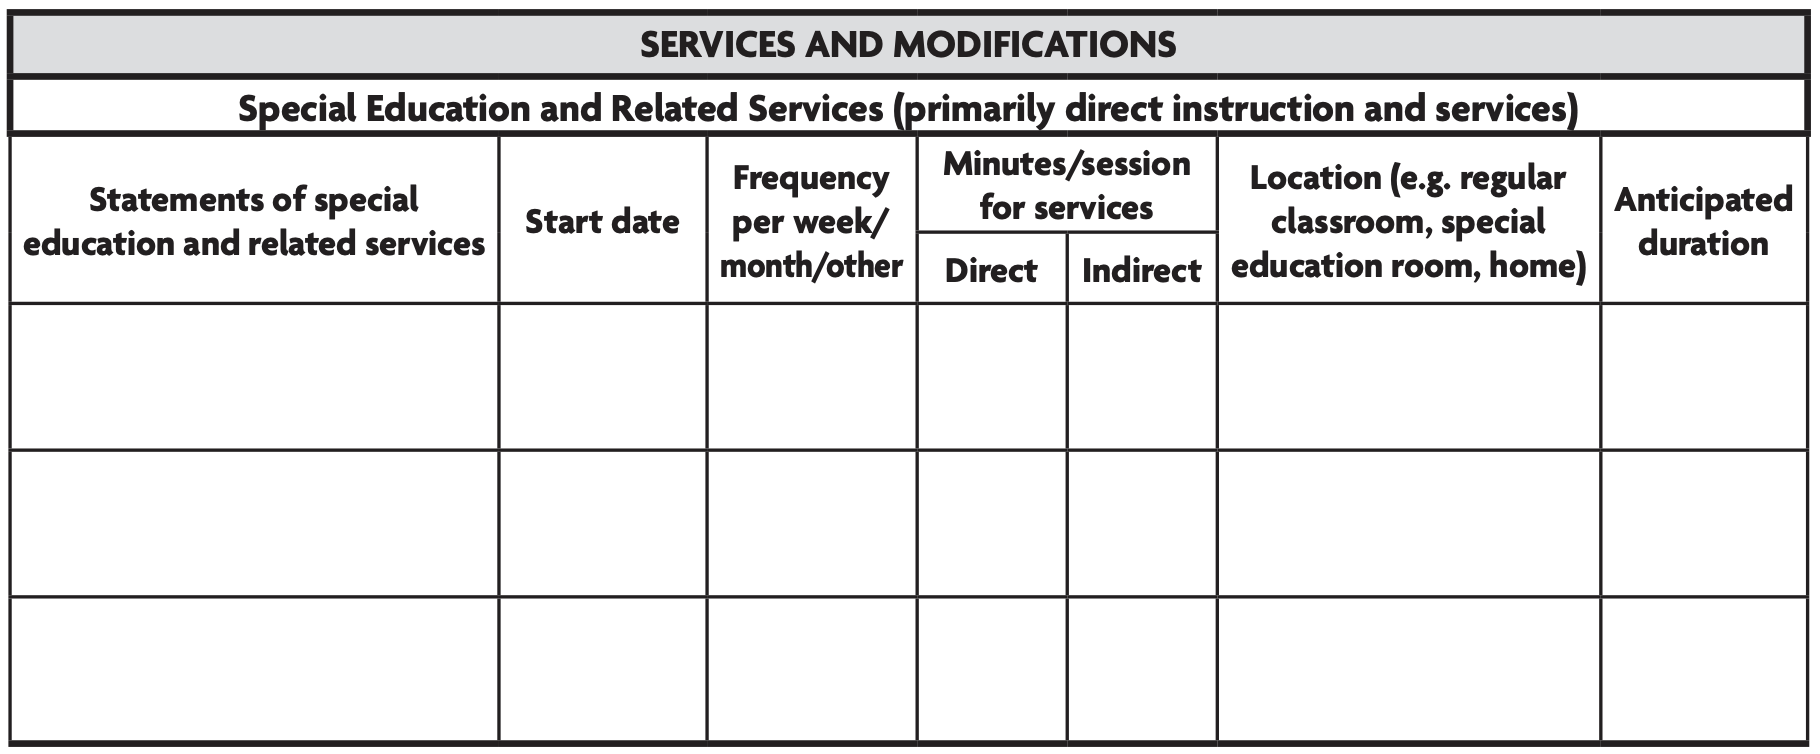 Image is a table made to be filled in with information about special education and related services with columns for start date, frequency, minutes per session, Location, and anticipated duration.